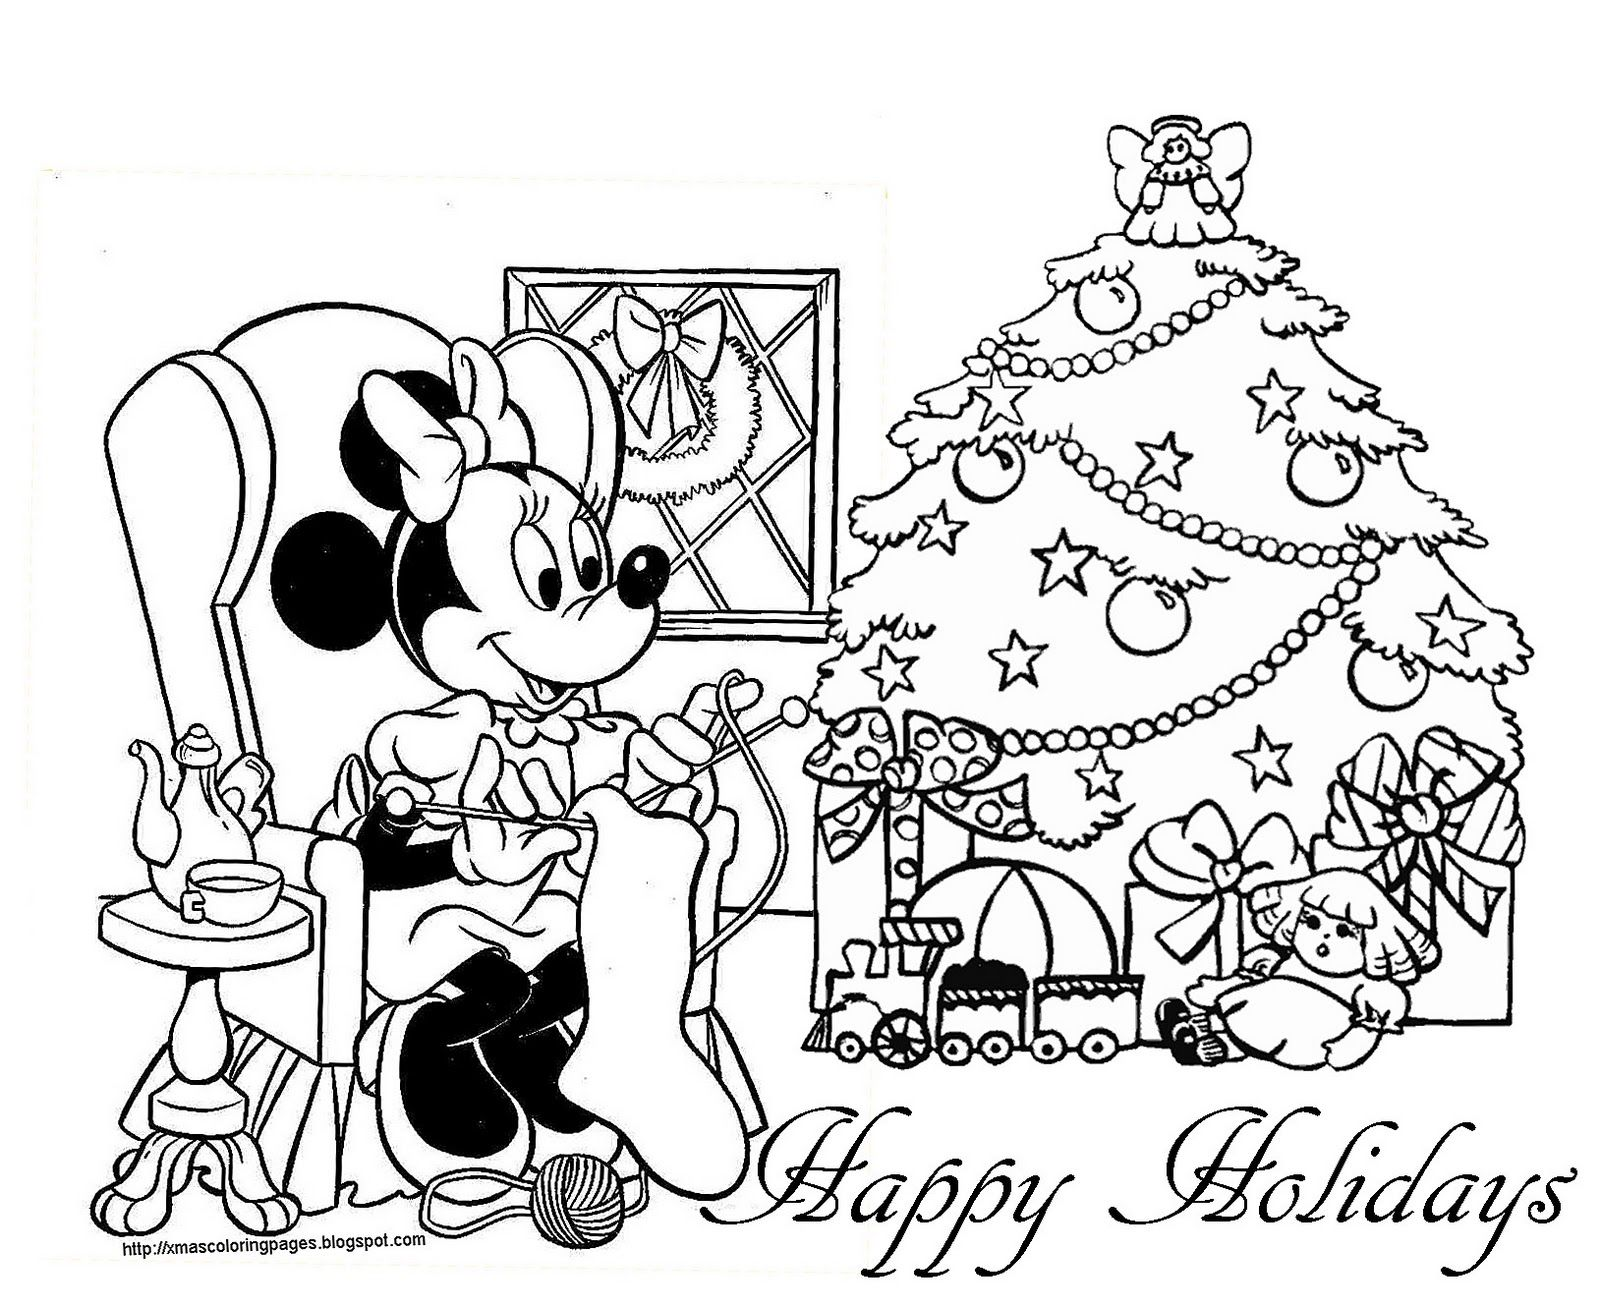 Disney Christmas Coloring Pages For Adults With Pinterest Xmas